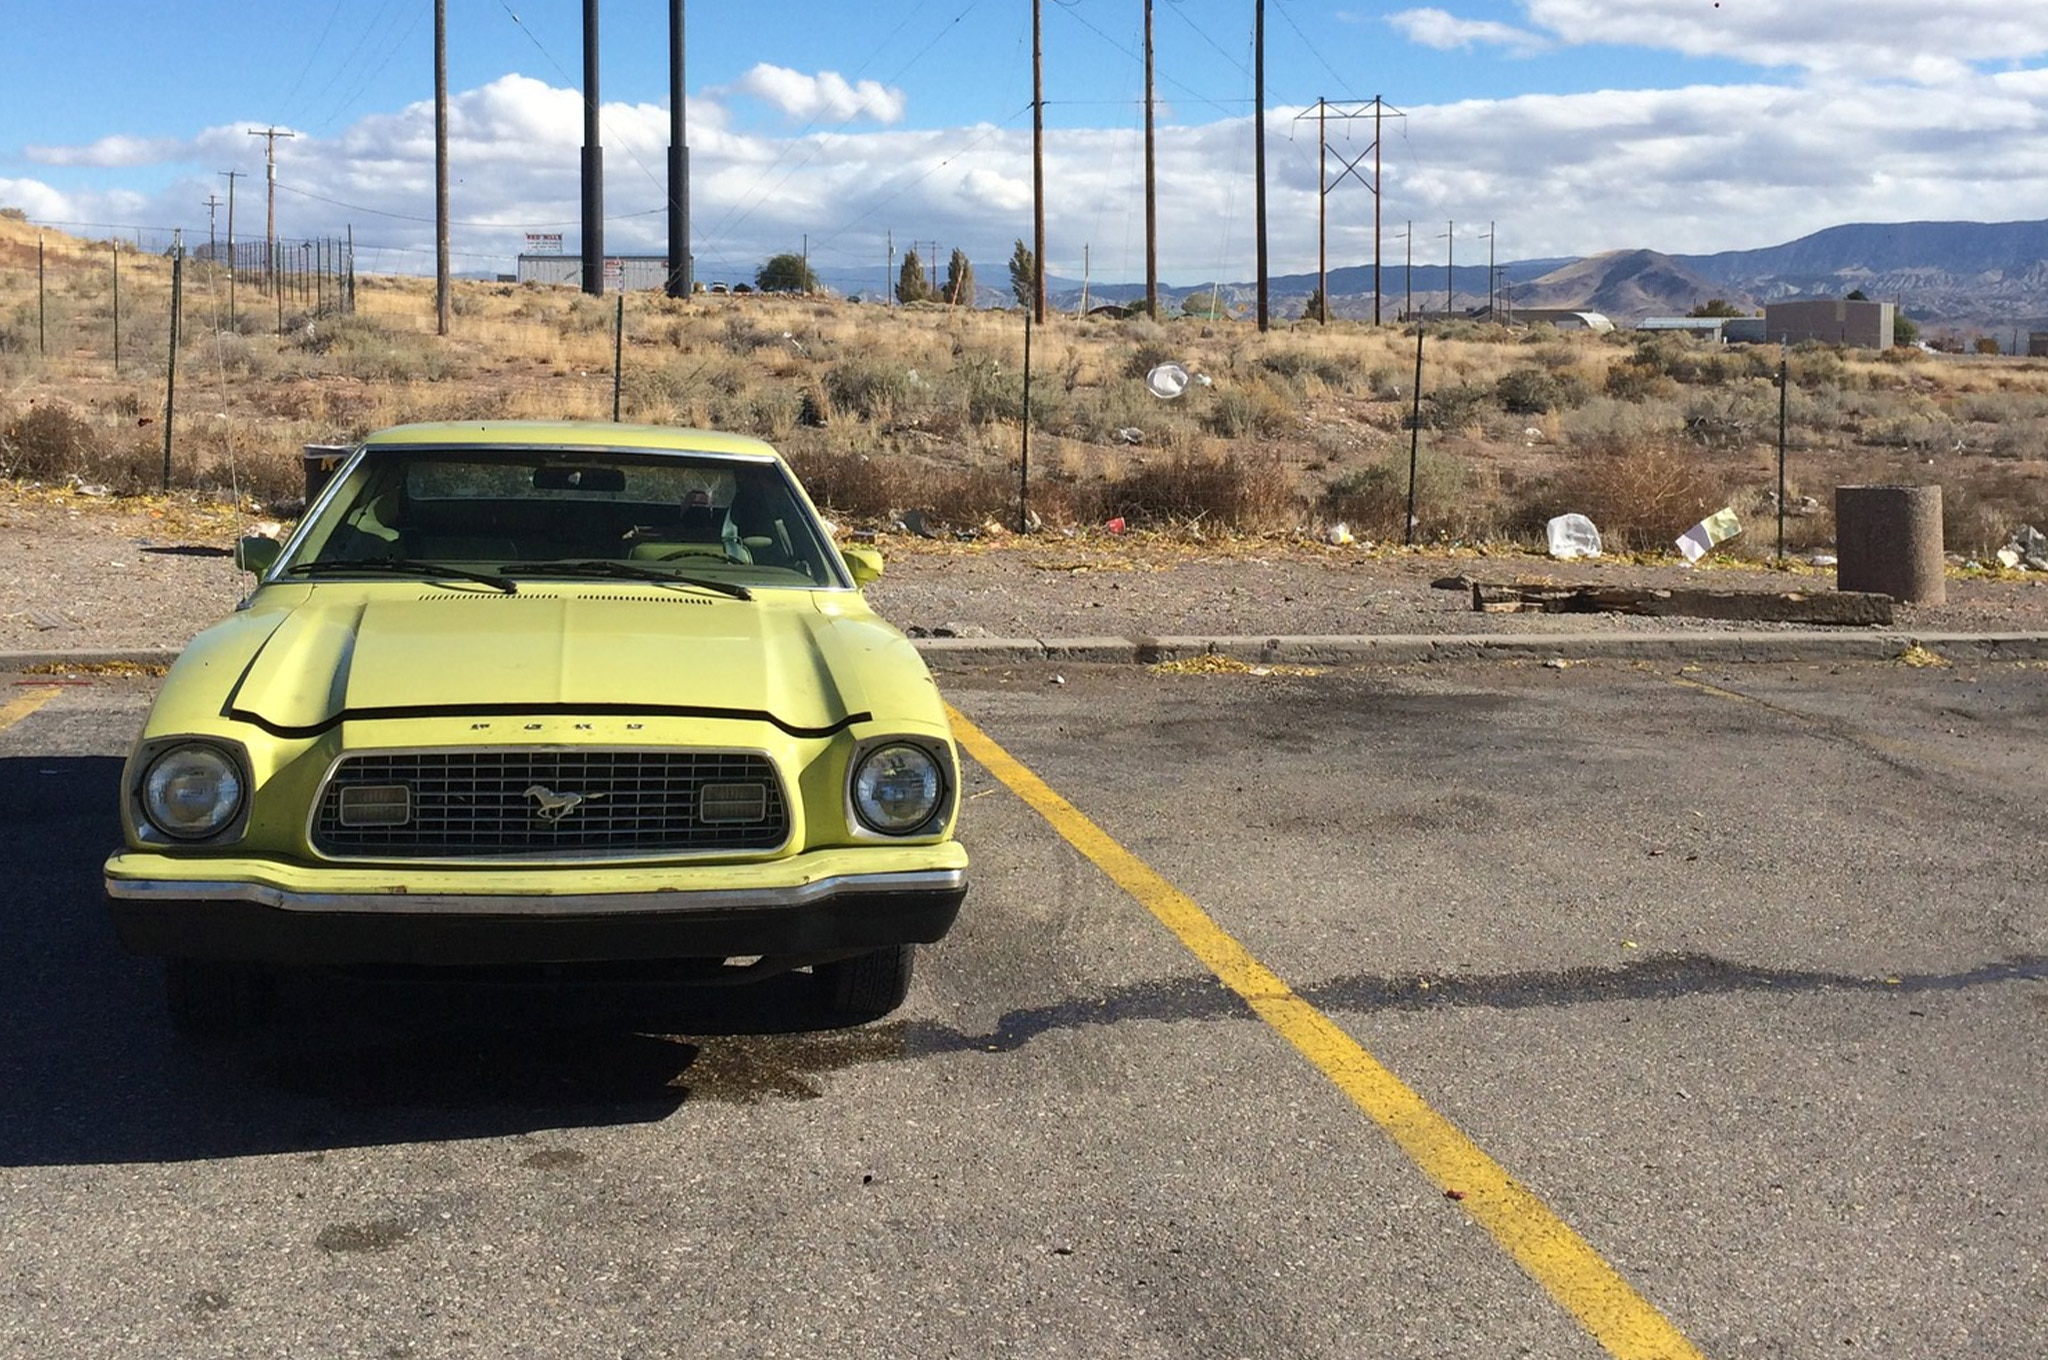 1974 Ford Mustang Ii Project Rodney Finale 01